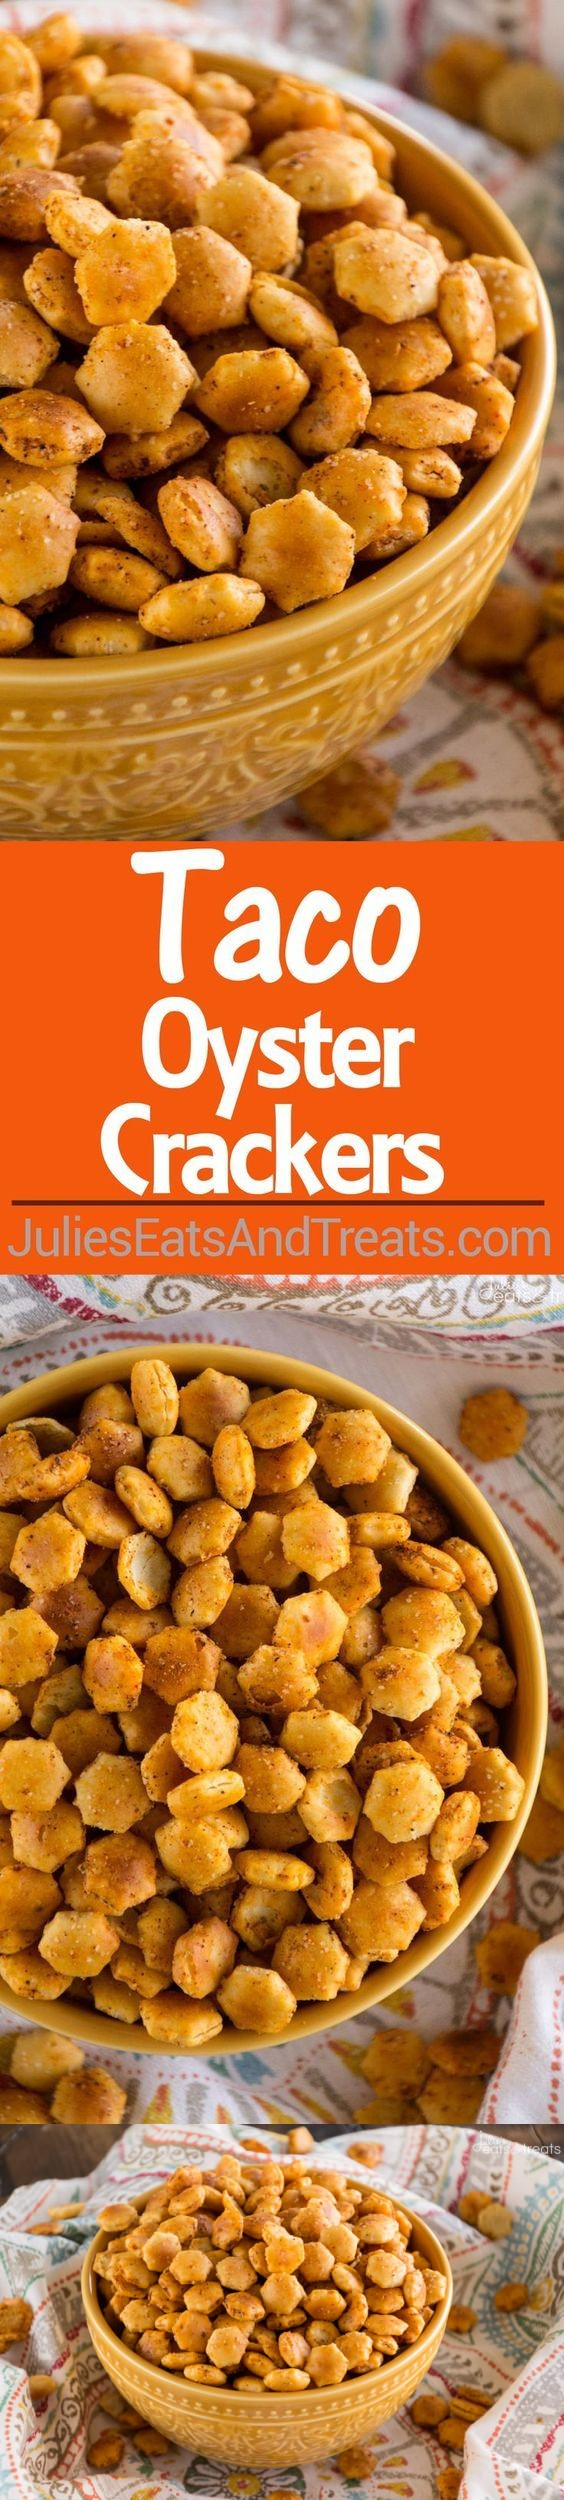 Taco Oyster Crackers